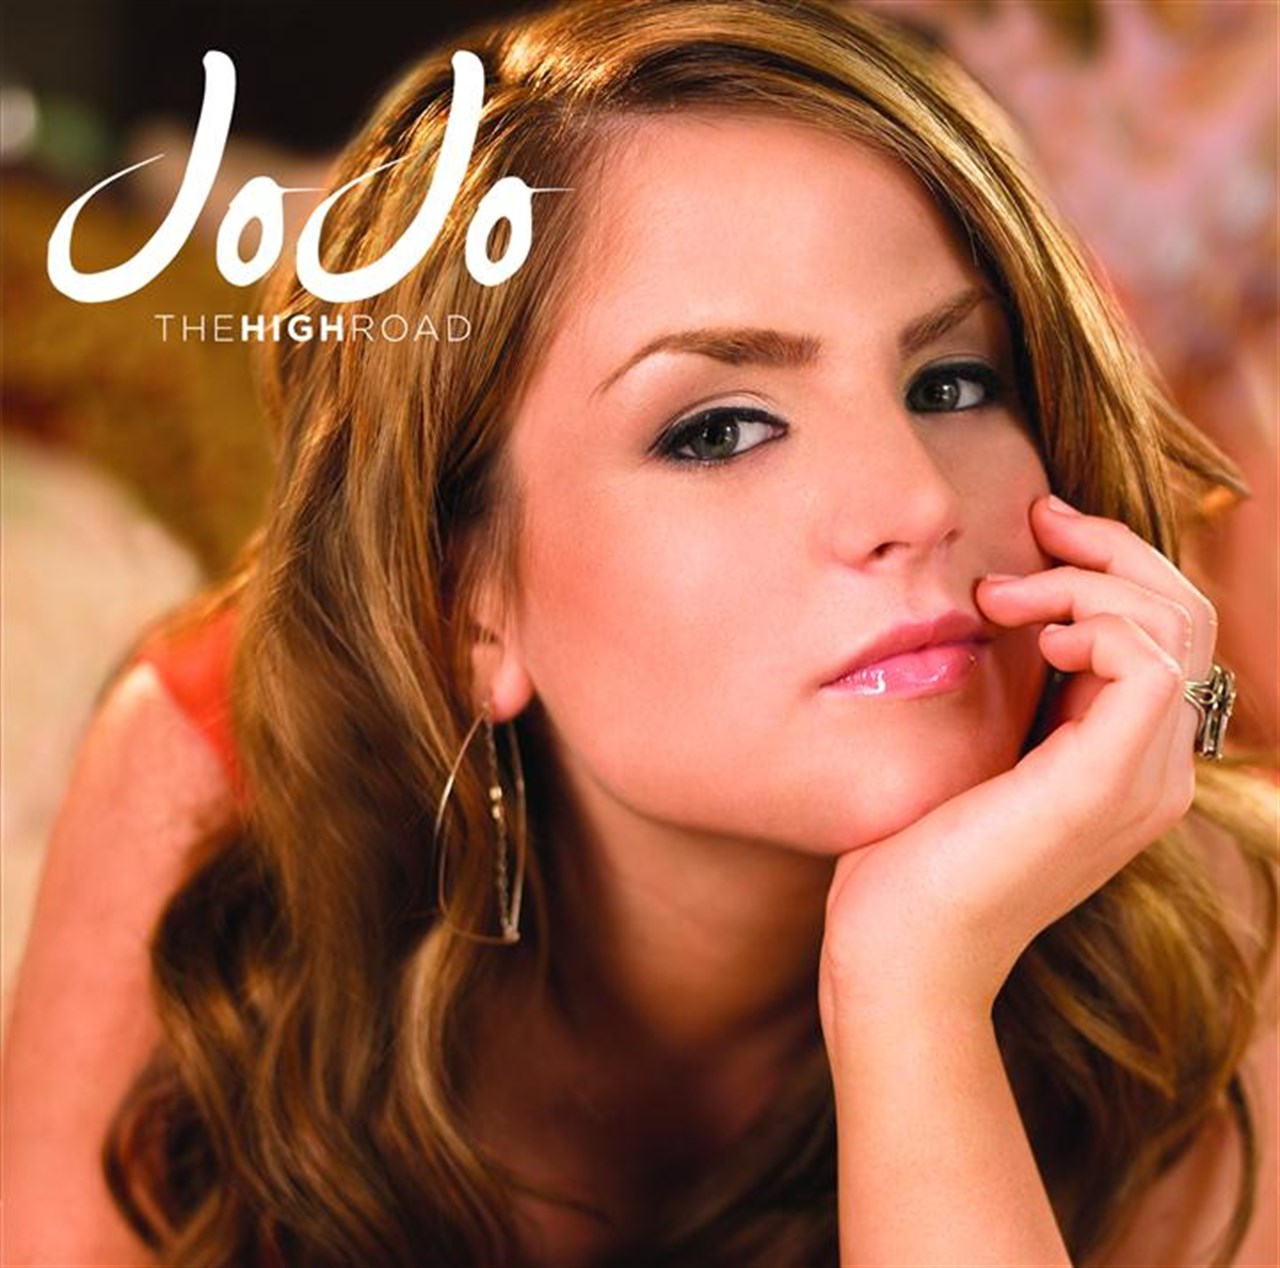 Art for Baby Its You Ft. Lil Bow Wow by JoJo